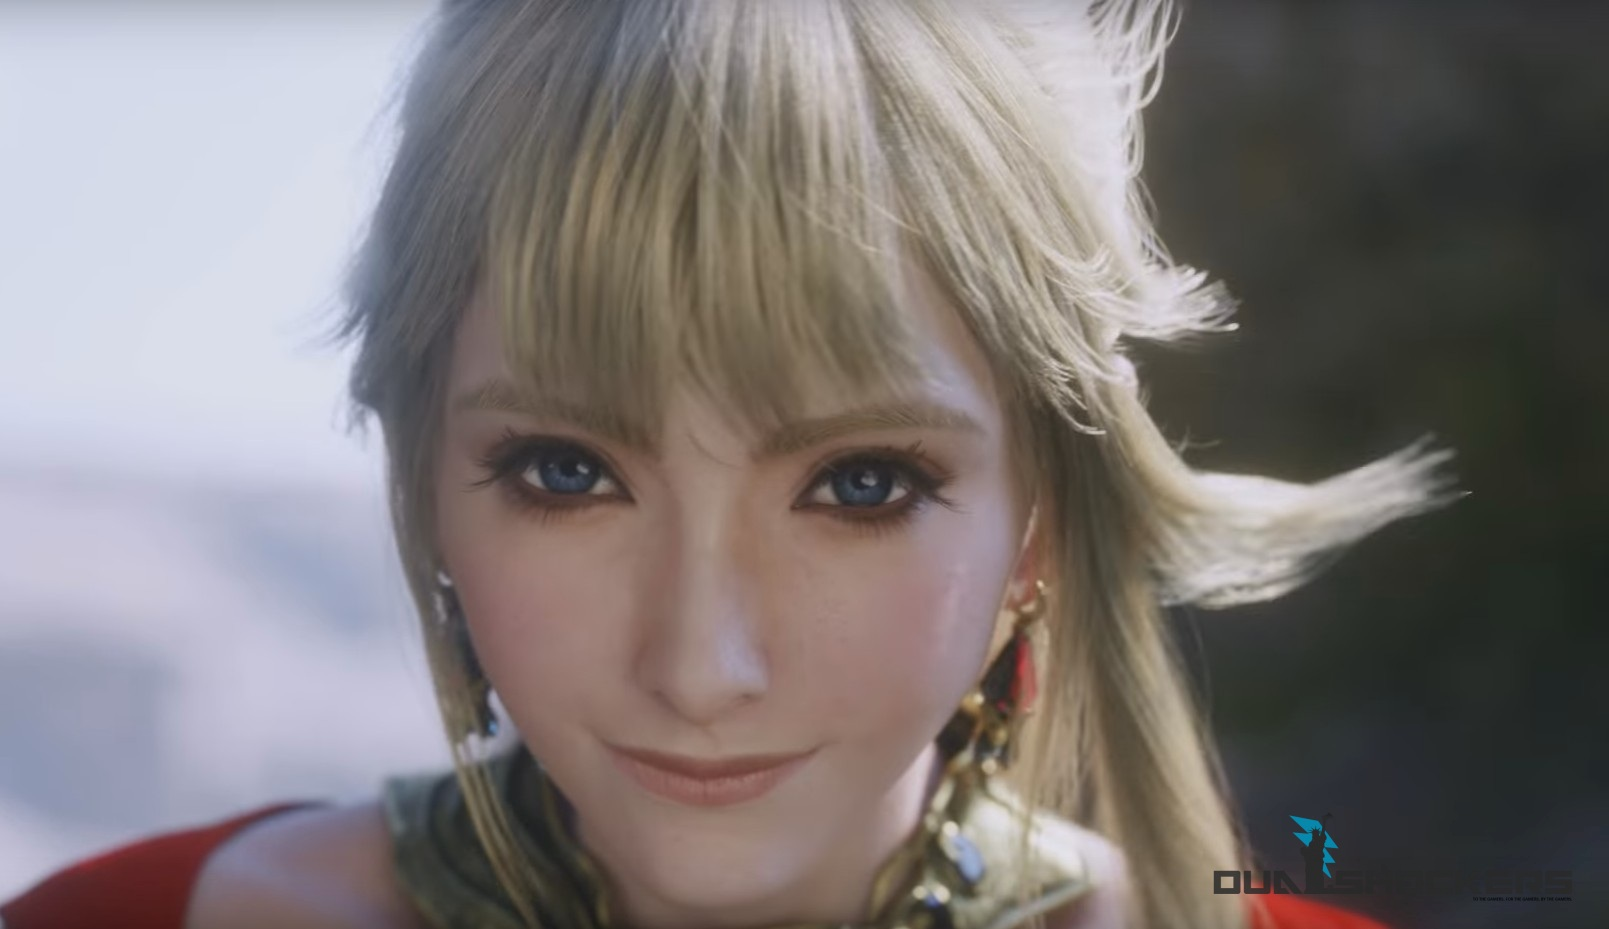 Final Fantasy XIV Stormblood Gets Tons Of New Info PC Requirements And Key Characters Revealed